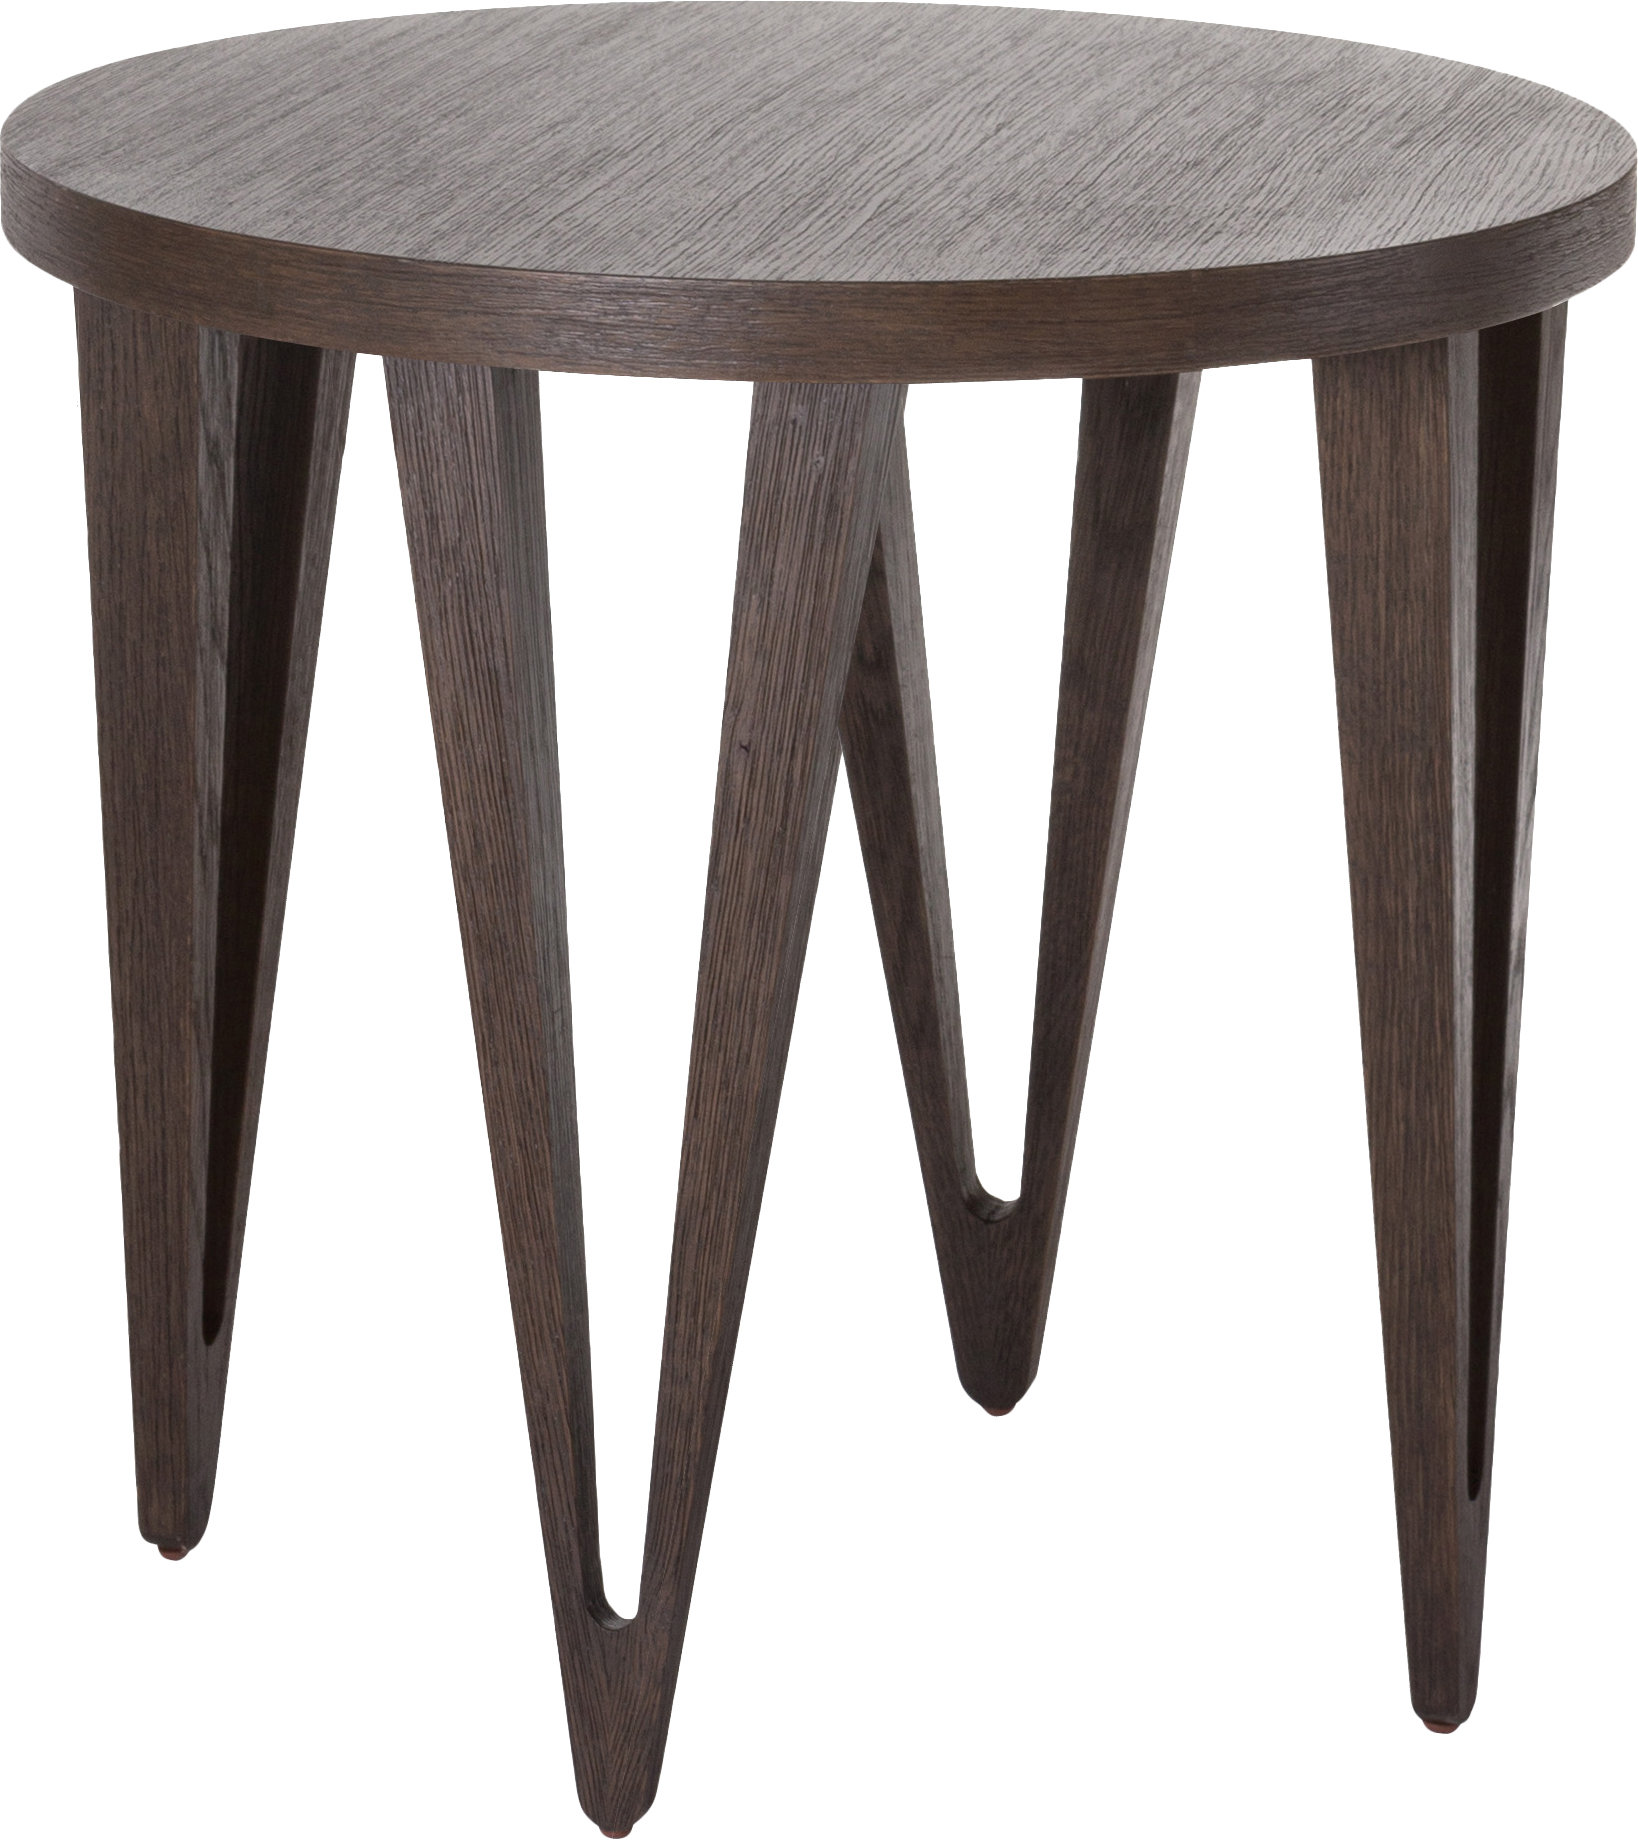 brownstone furniture hudson end table wood anton accent pedestal dining target media cabinet small antique marble top brass and glass cocktail tables gold home decor mirror coffee